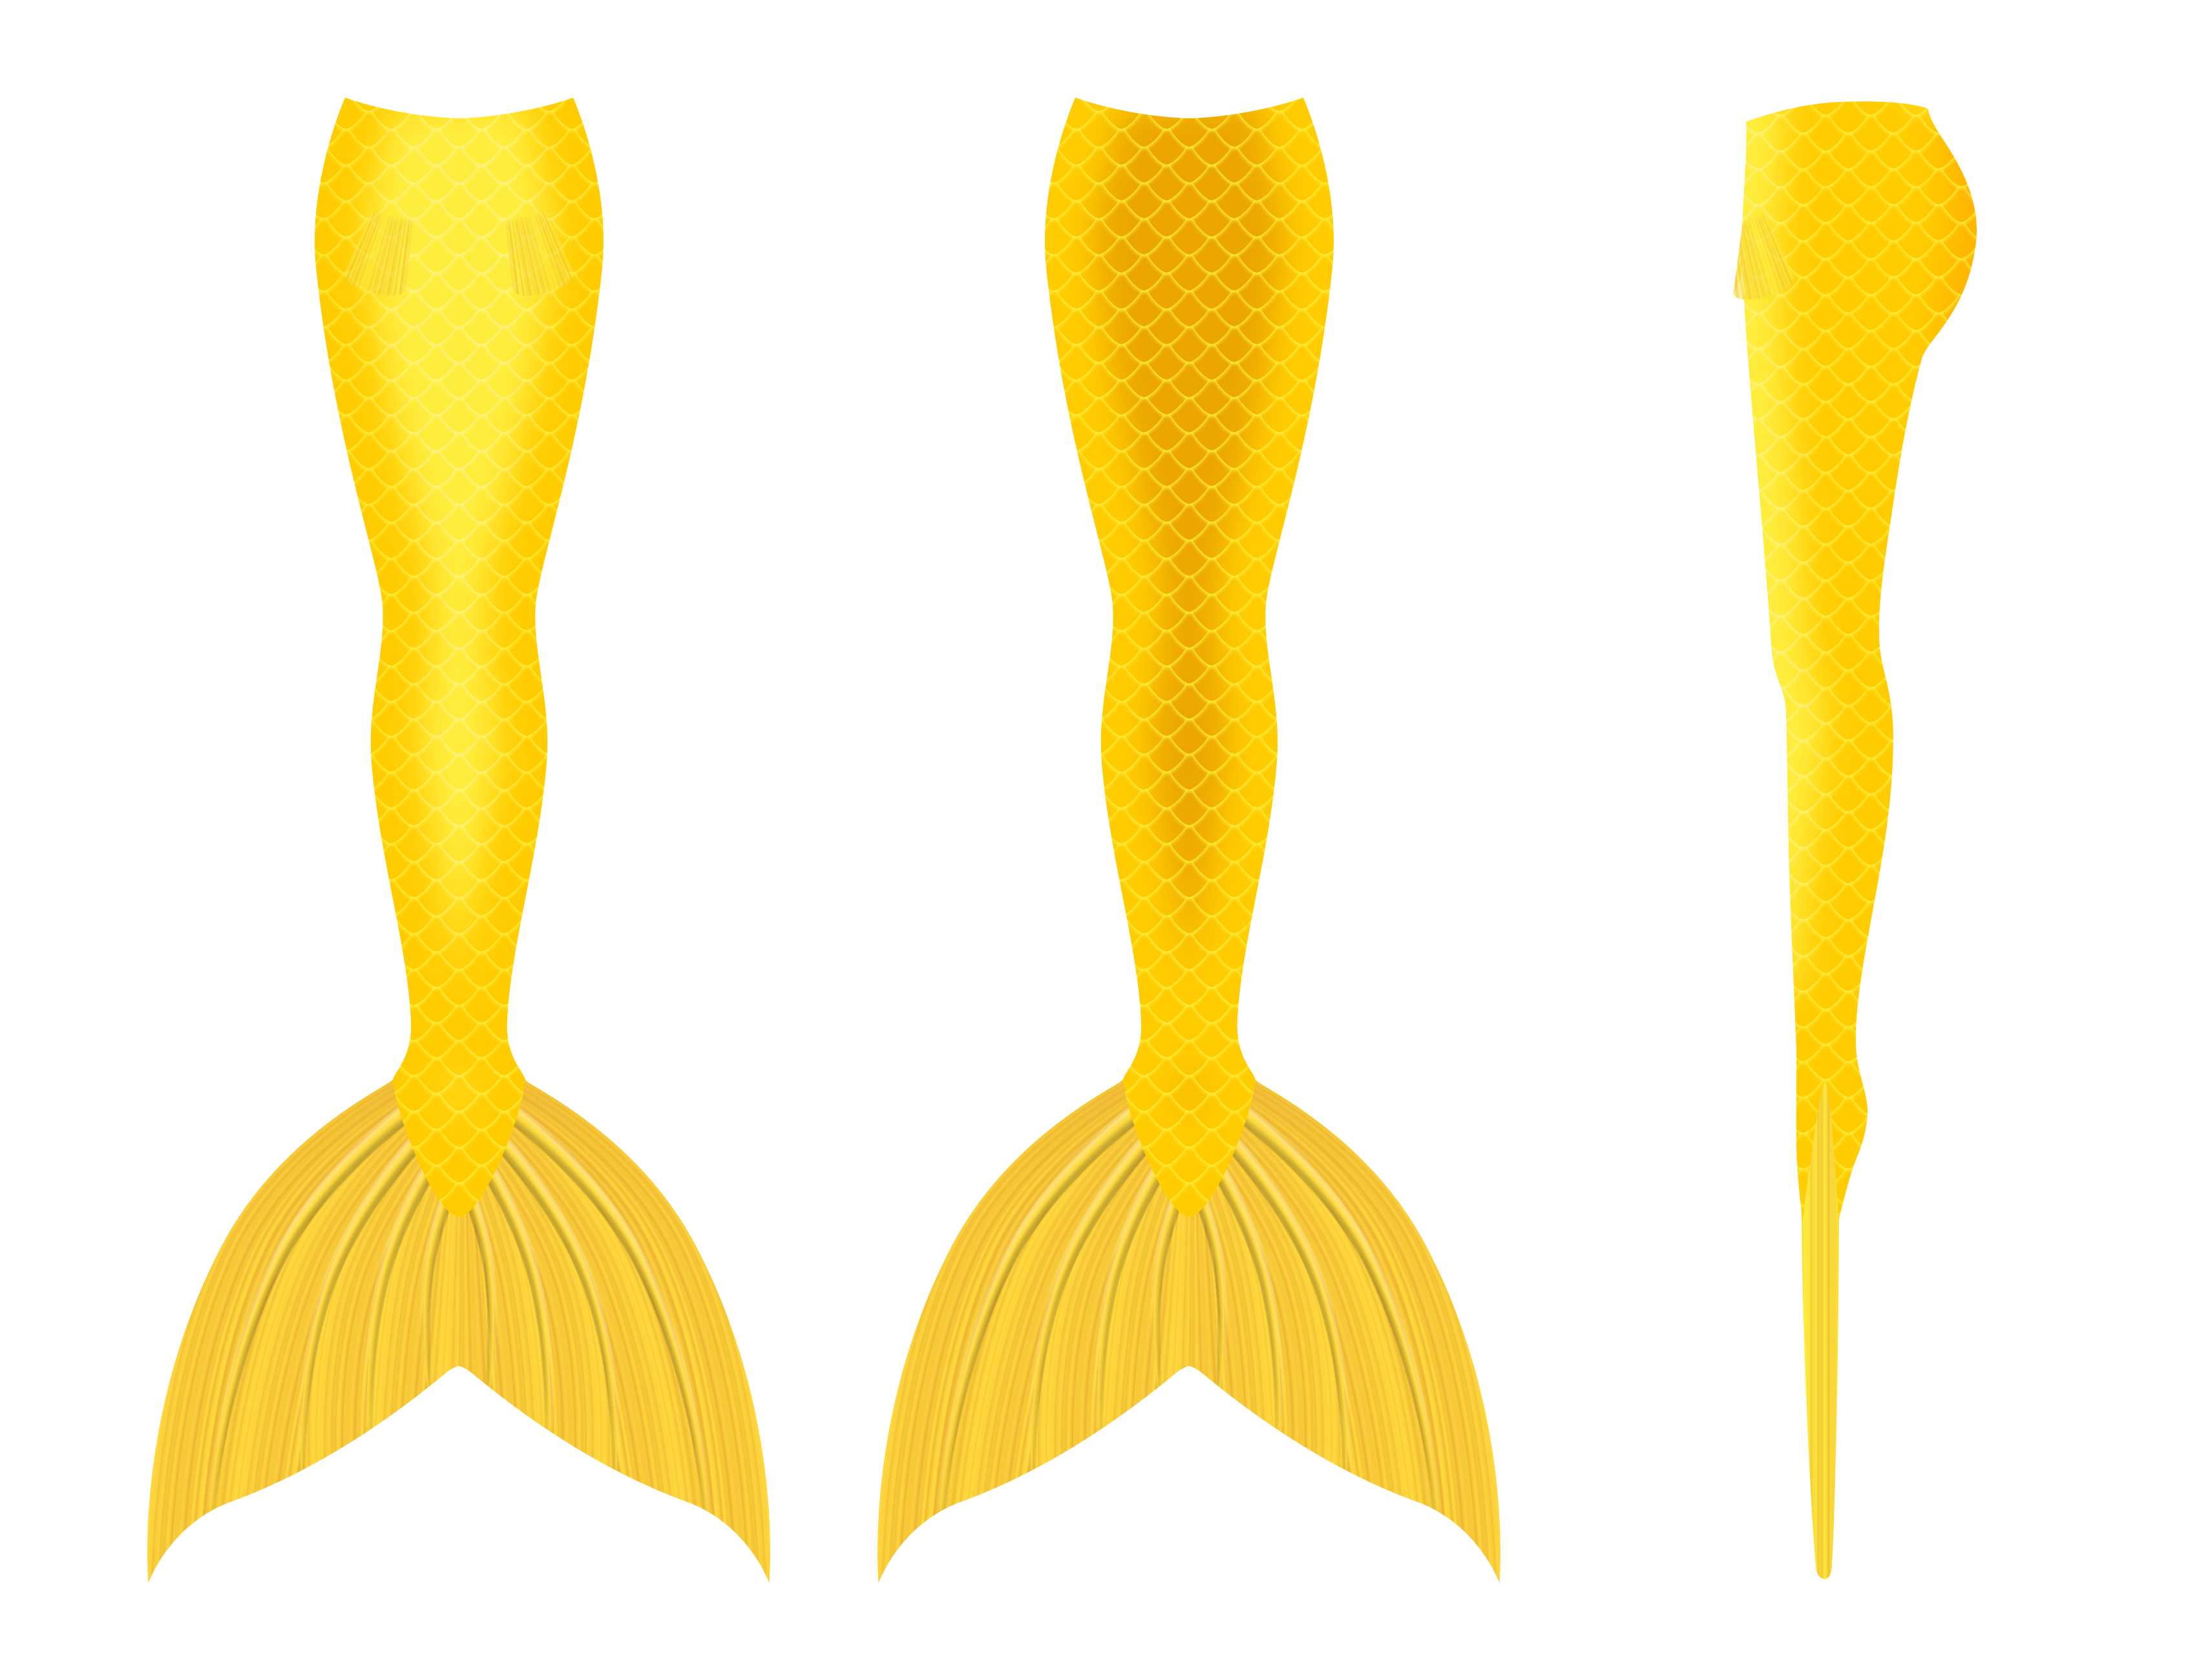 3400x2600 Mermaid Tail Design 5 (Gold) By Hydra1337